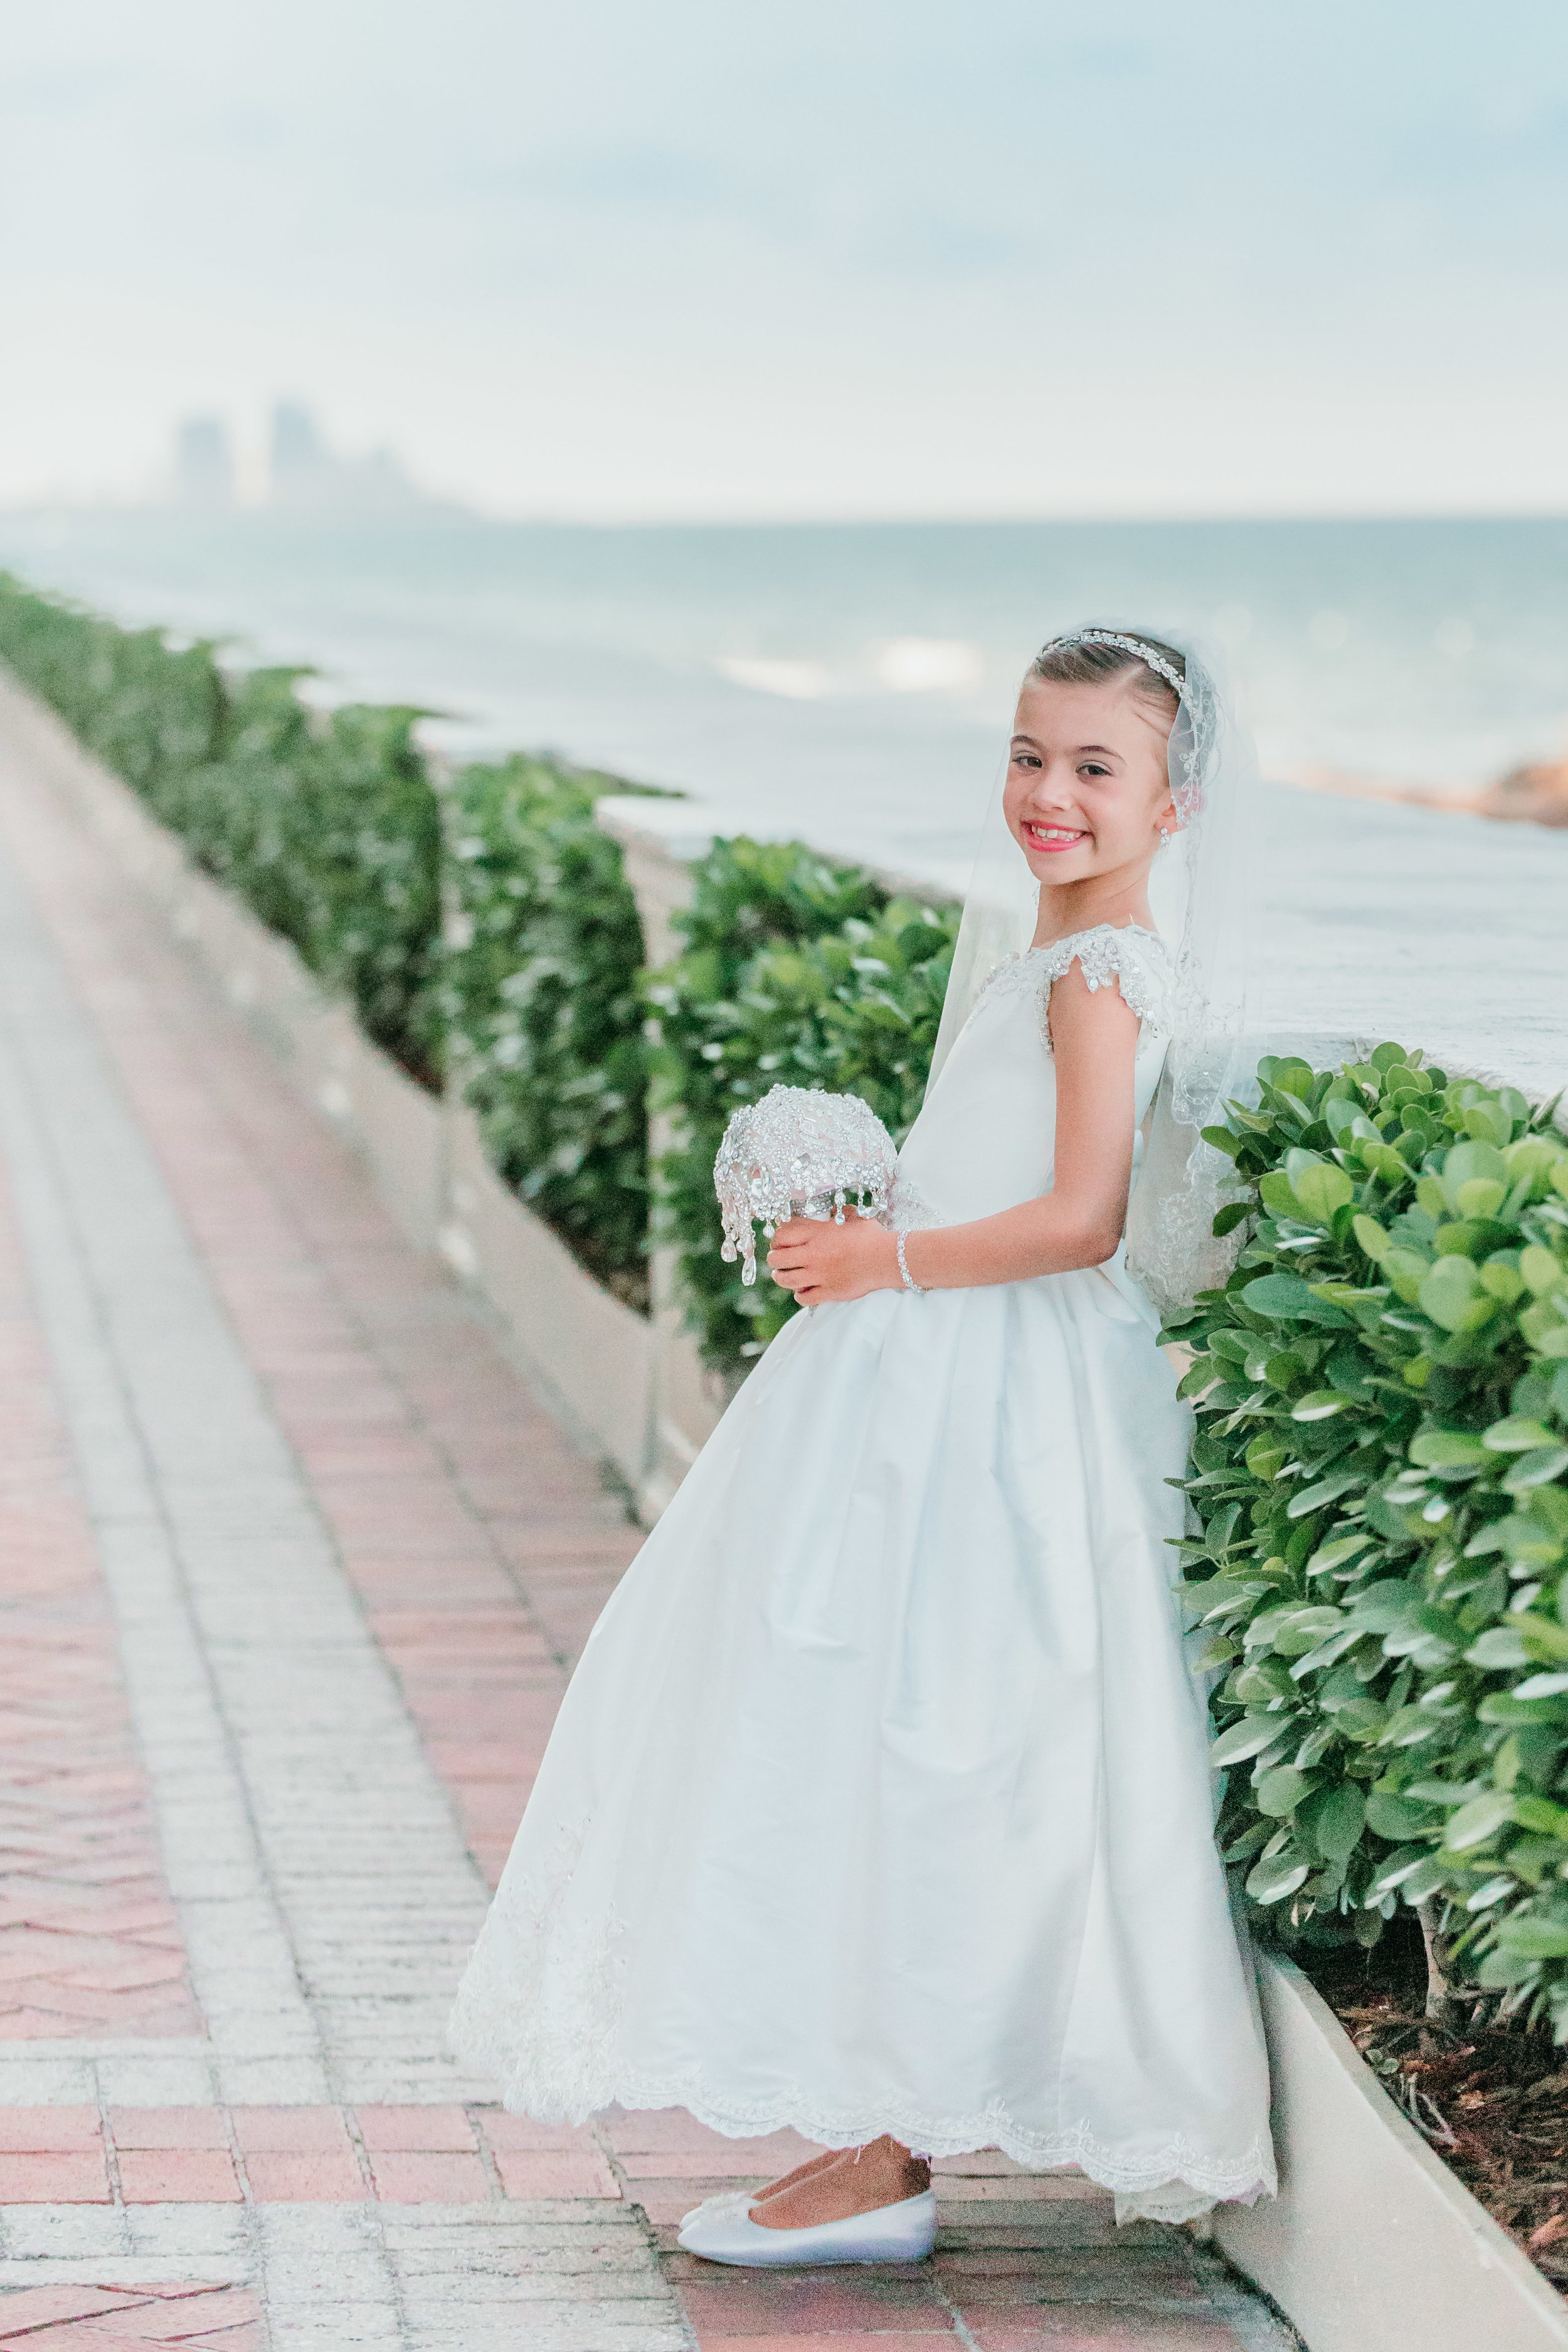 First Communion Session at The Breakers Palm Beach